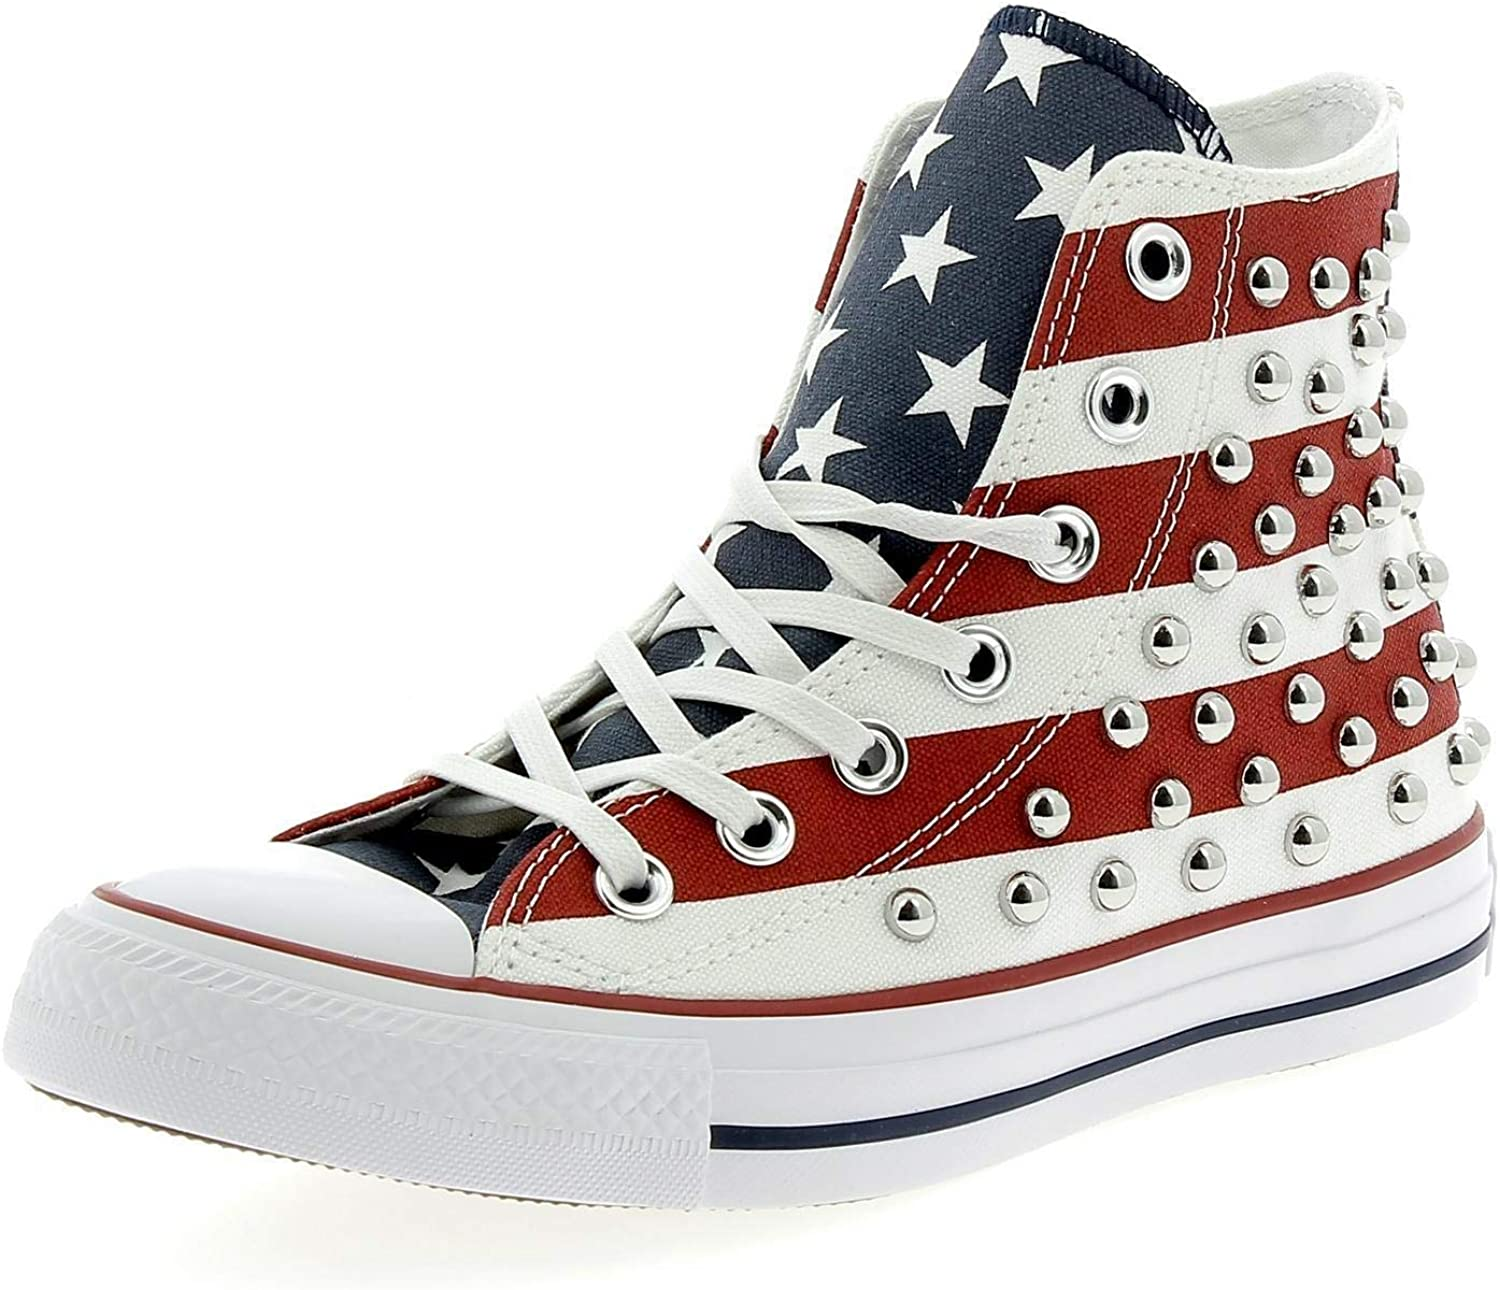 Converse Chuck Taylor All Star Studded Americana High Top Red White bluee 160994C